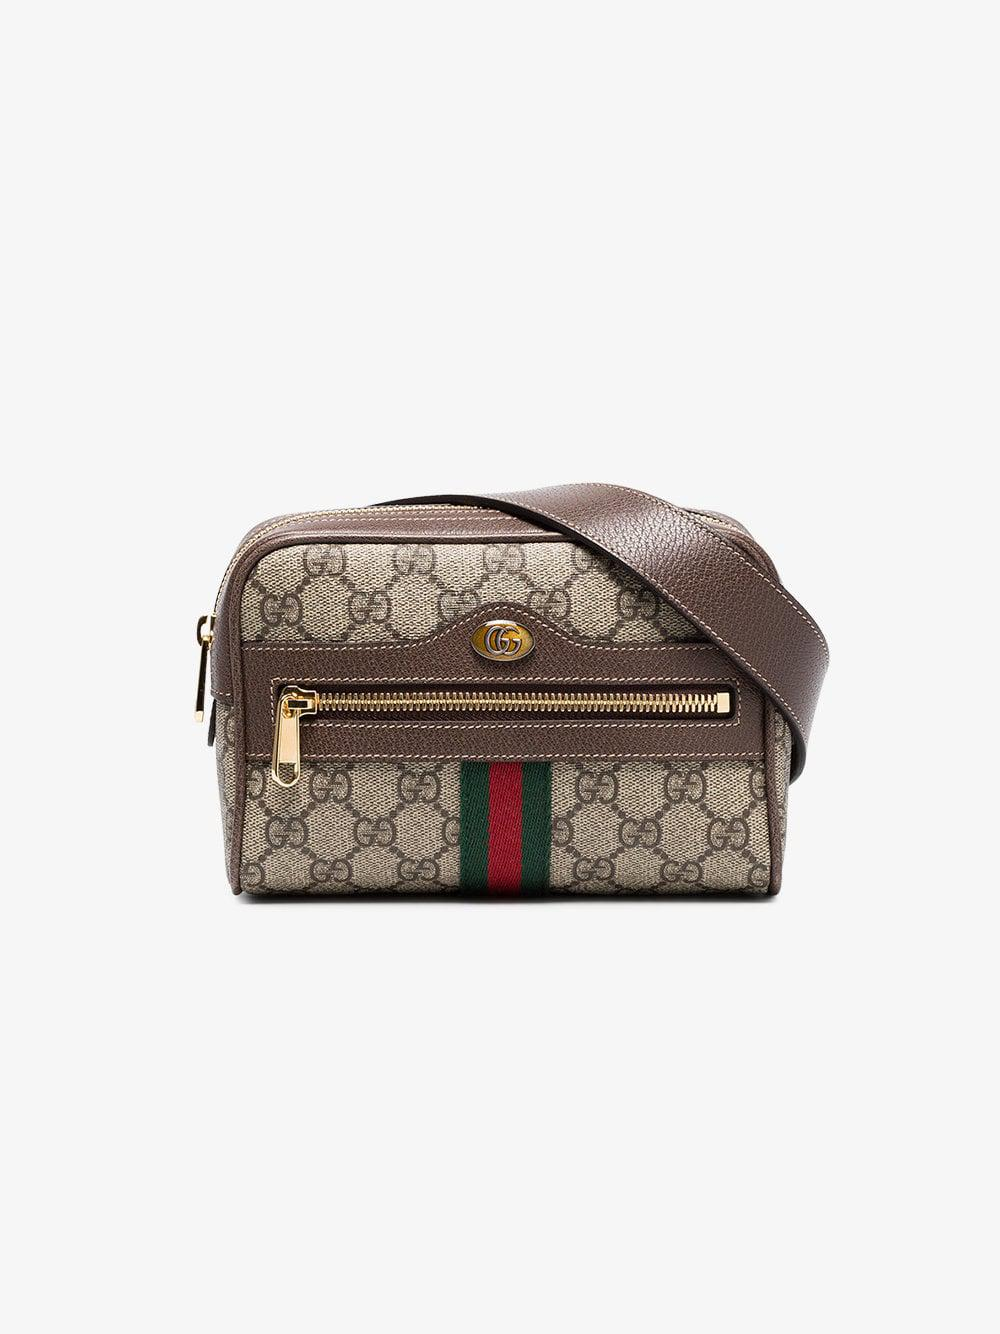 92972e96331 Lyst - Gucci Brown Ophidia GG Supreme Small Belt Bag in Brown - Save 15%